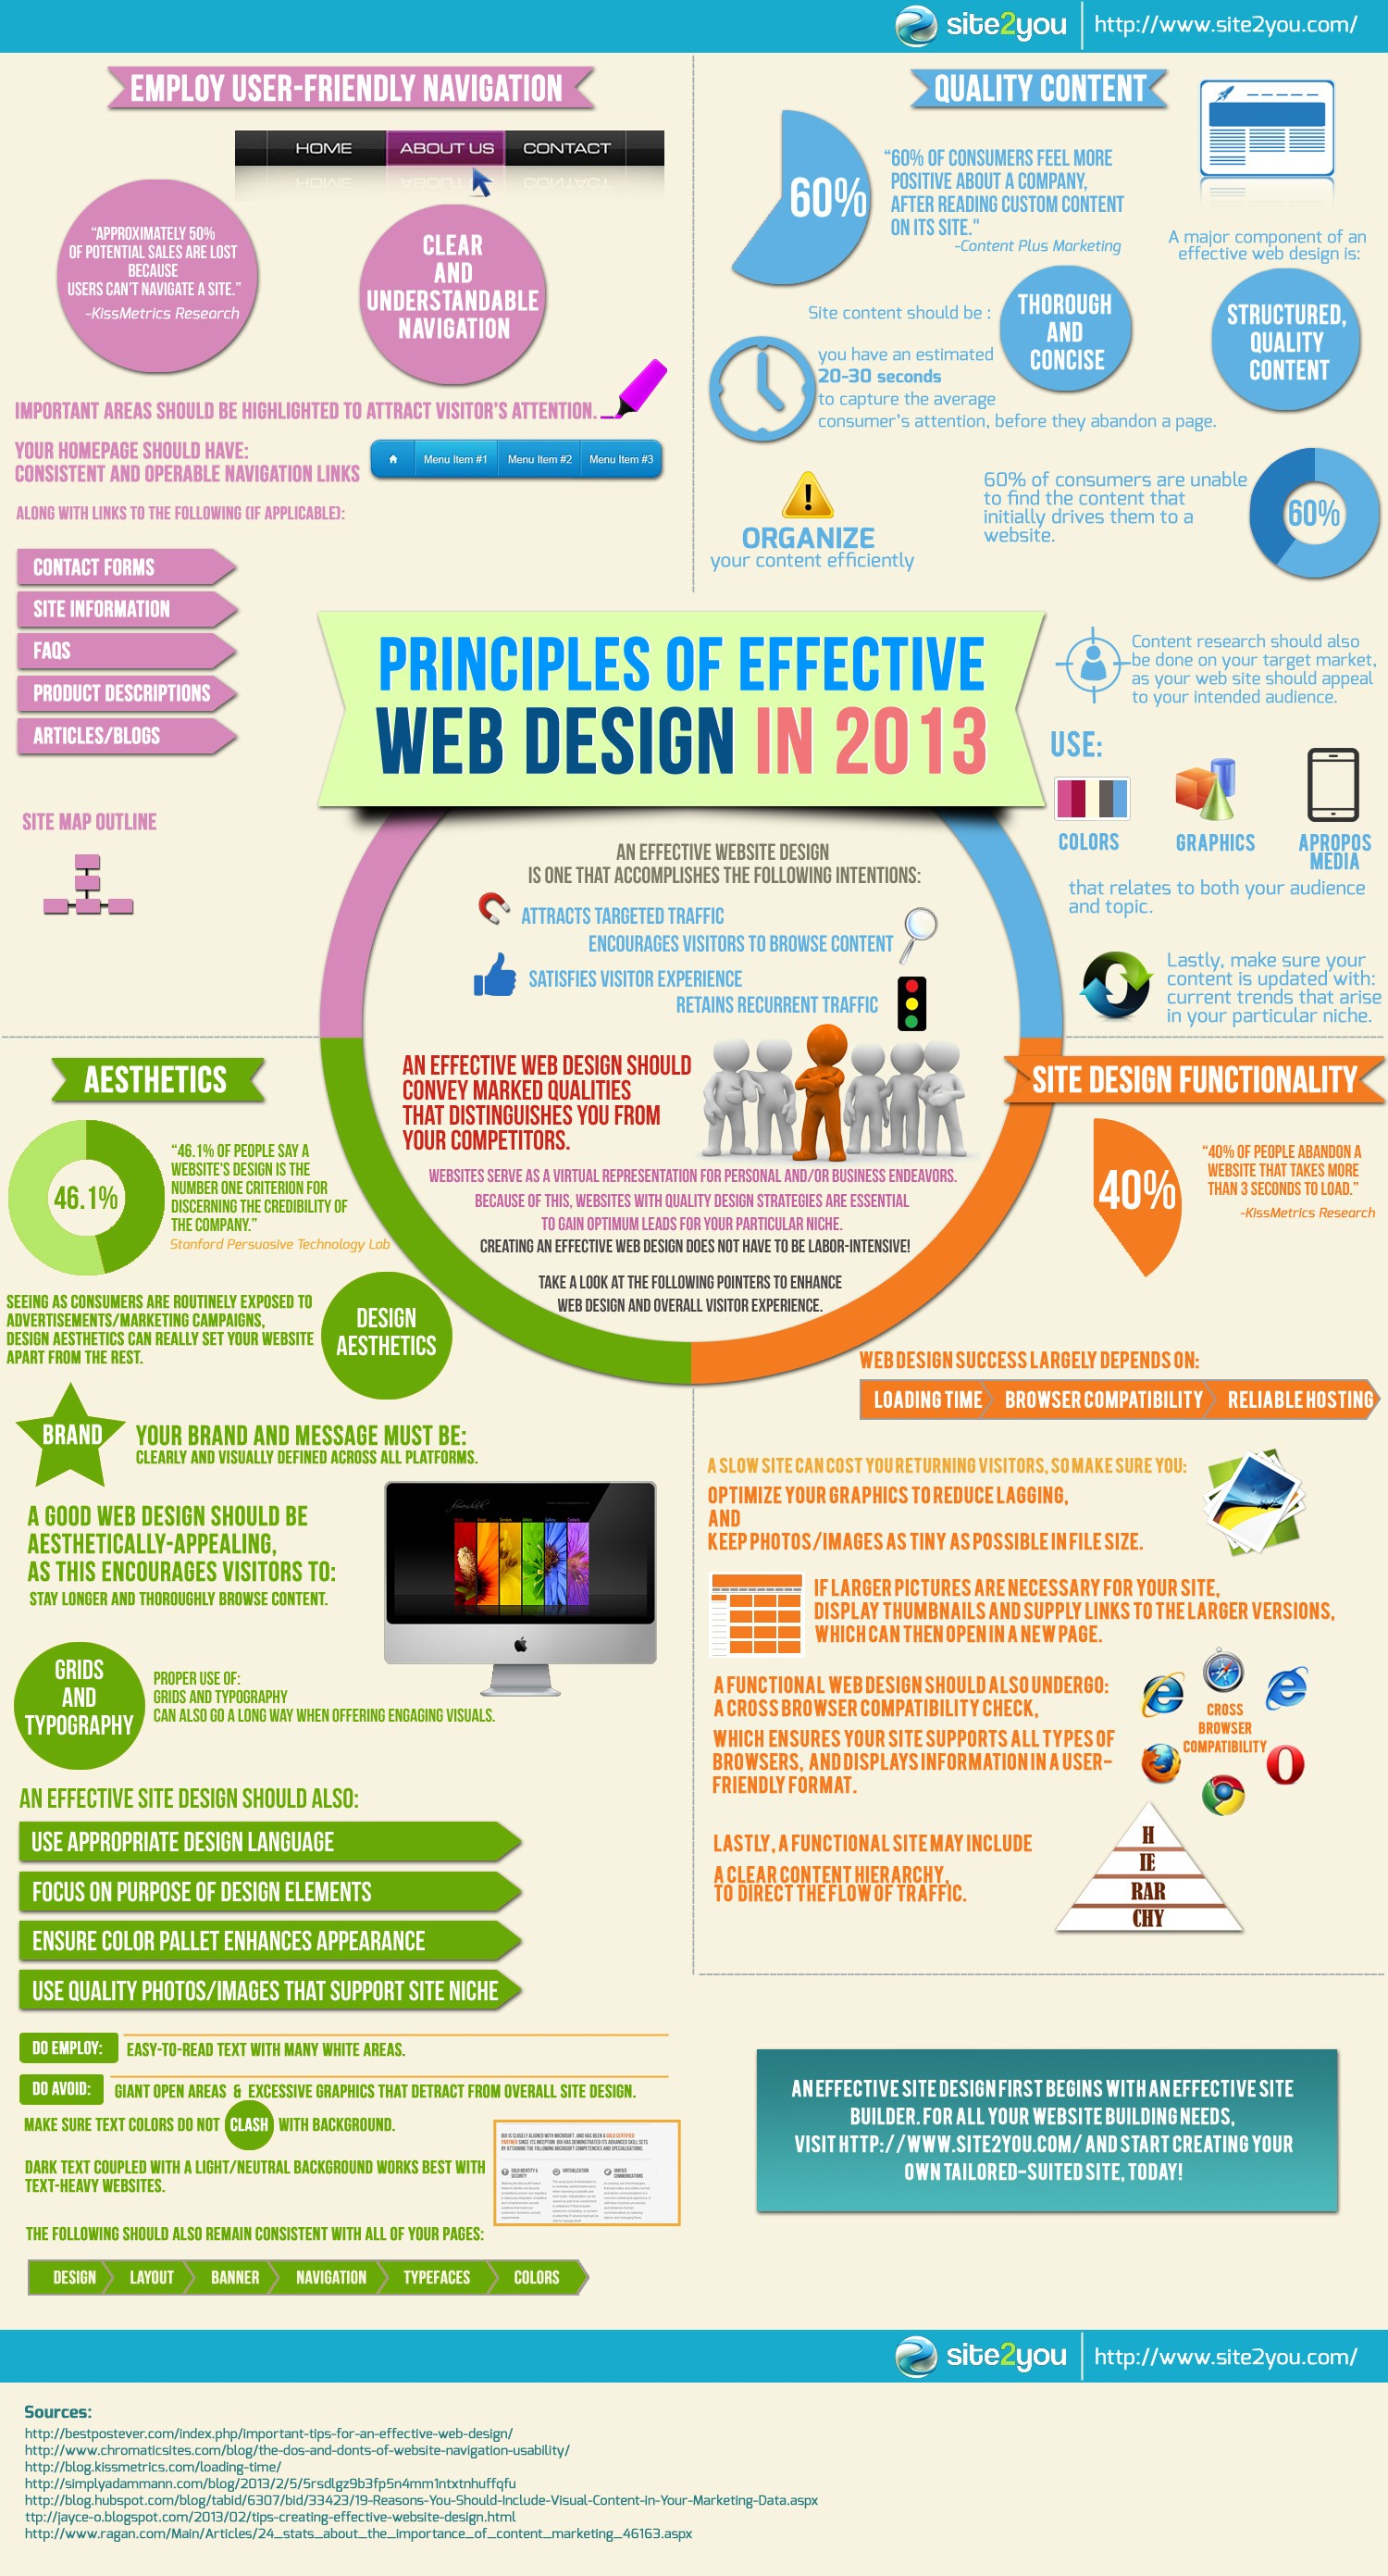 14 Infographic Graphic Design Principles Images ...